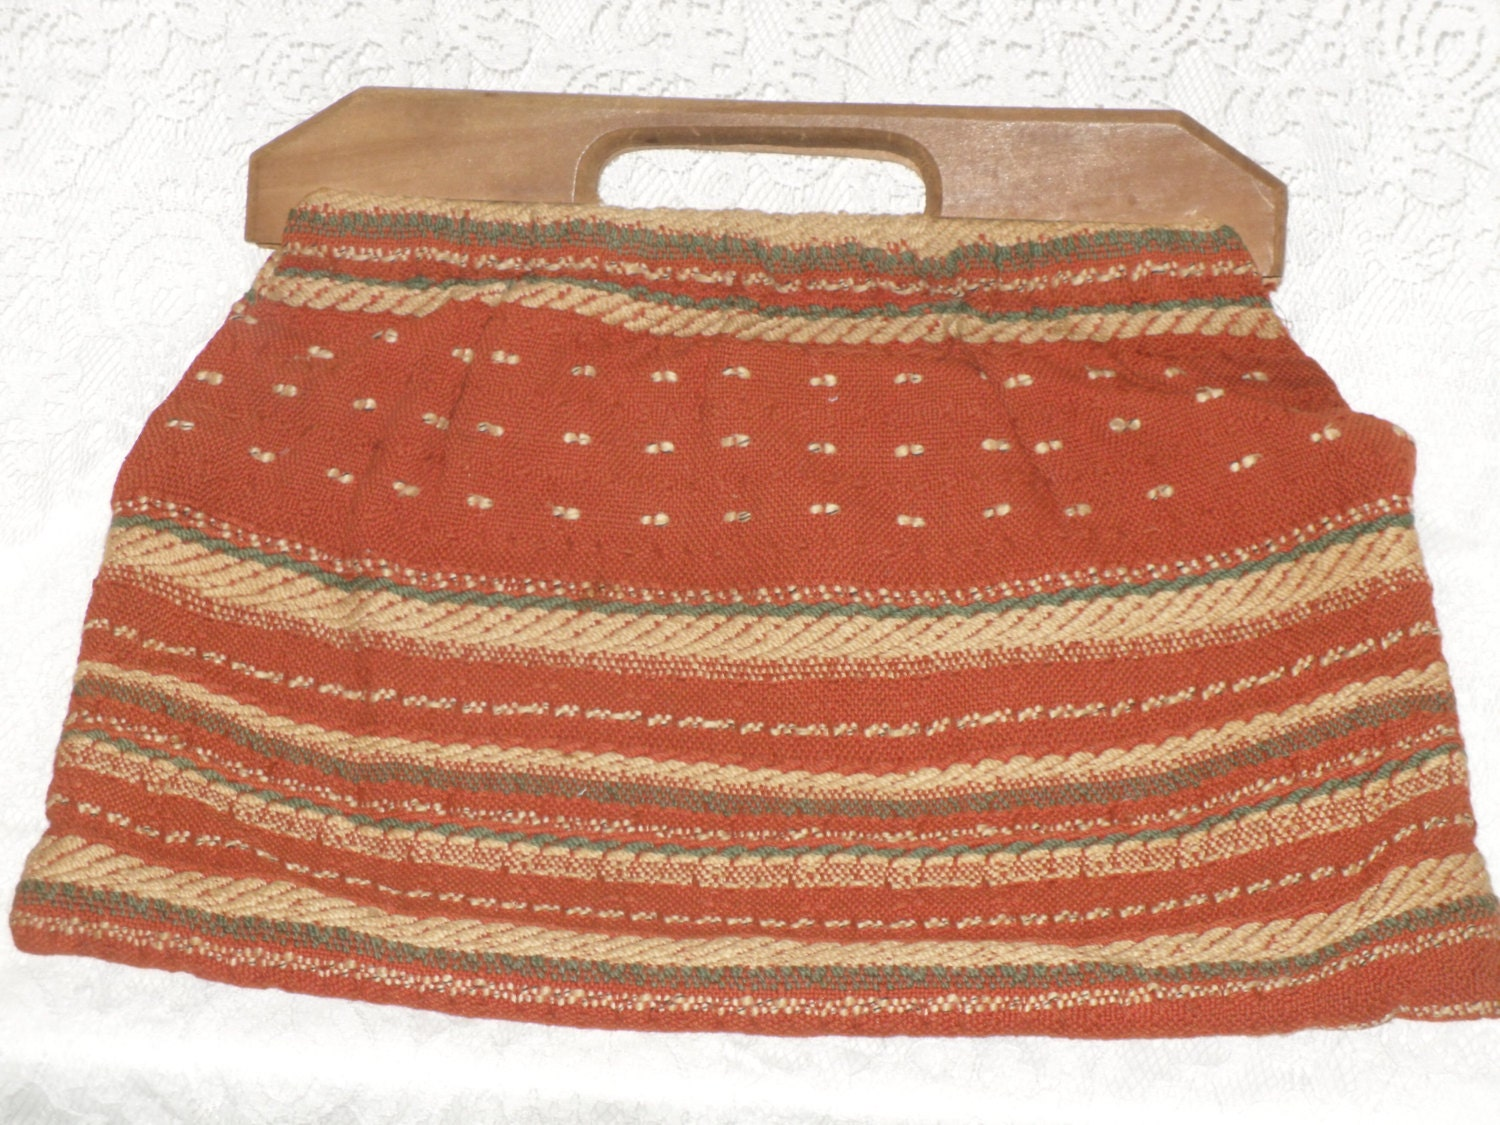 Vintage Knitting Bag : Vintage knitting sewing tote bag weave with by